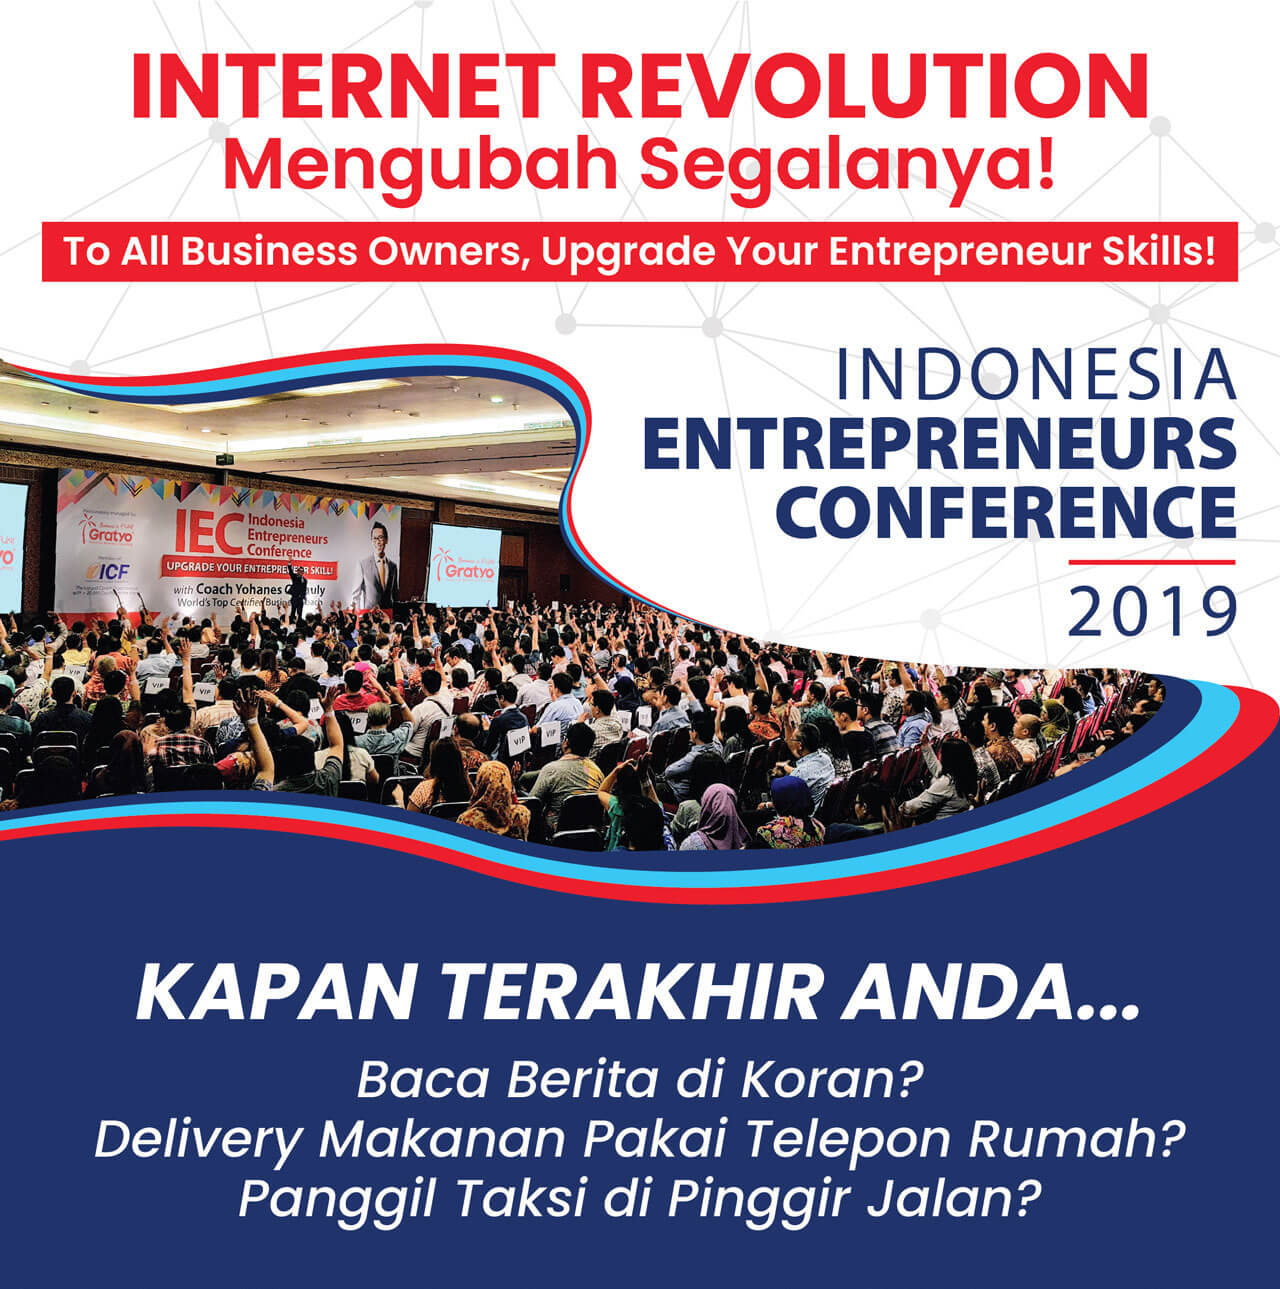 Indonesia Entrepreneurs Conference 2019